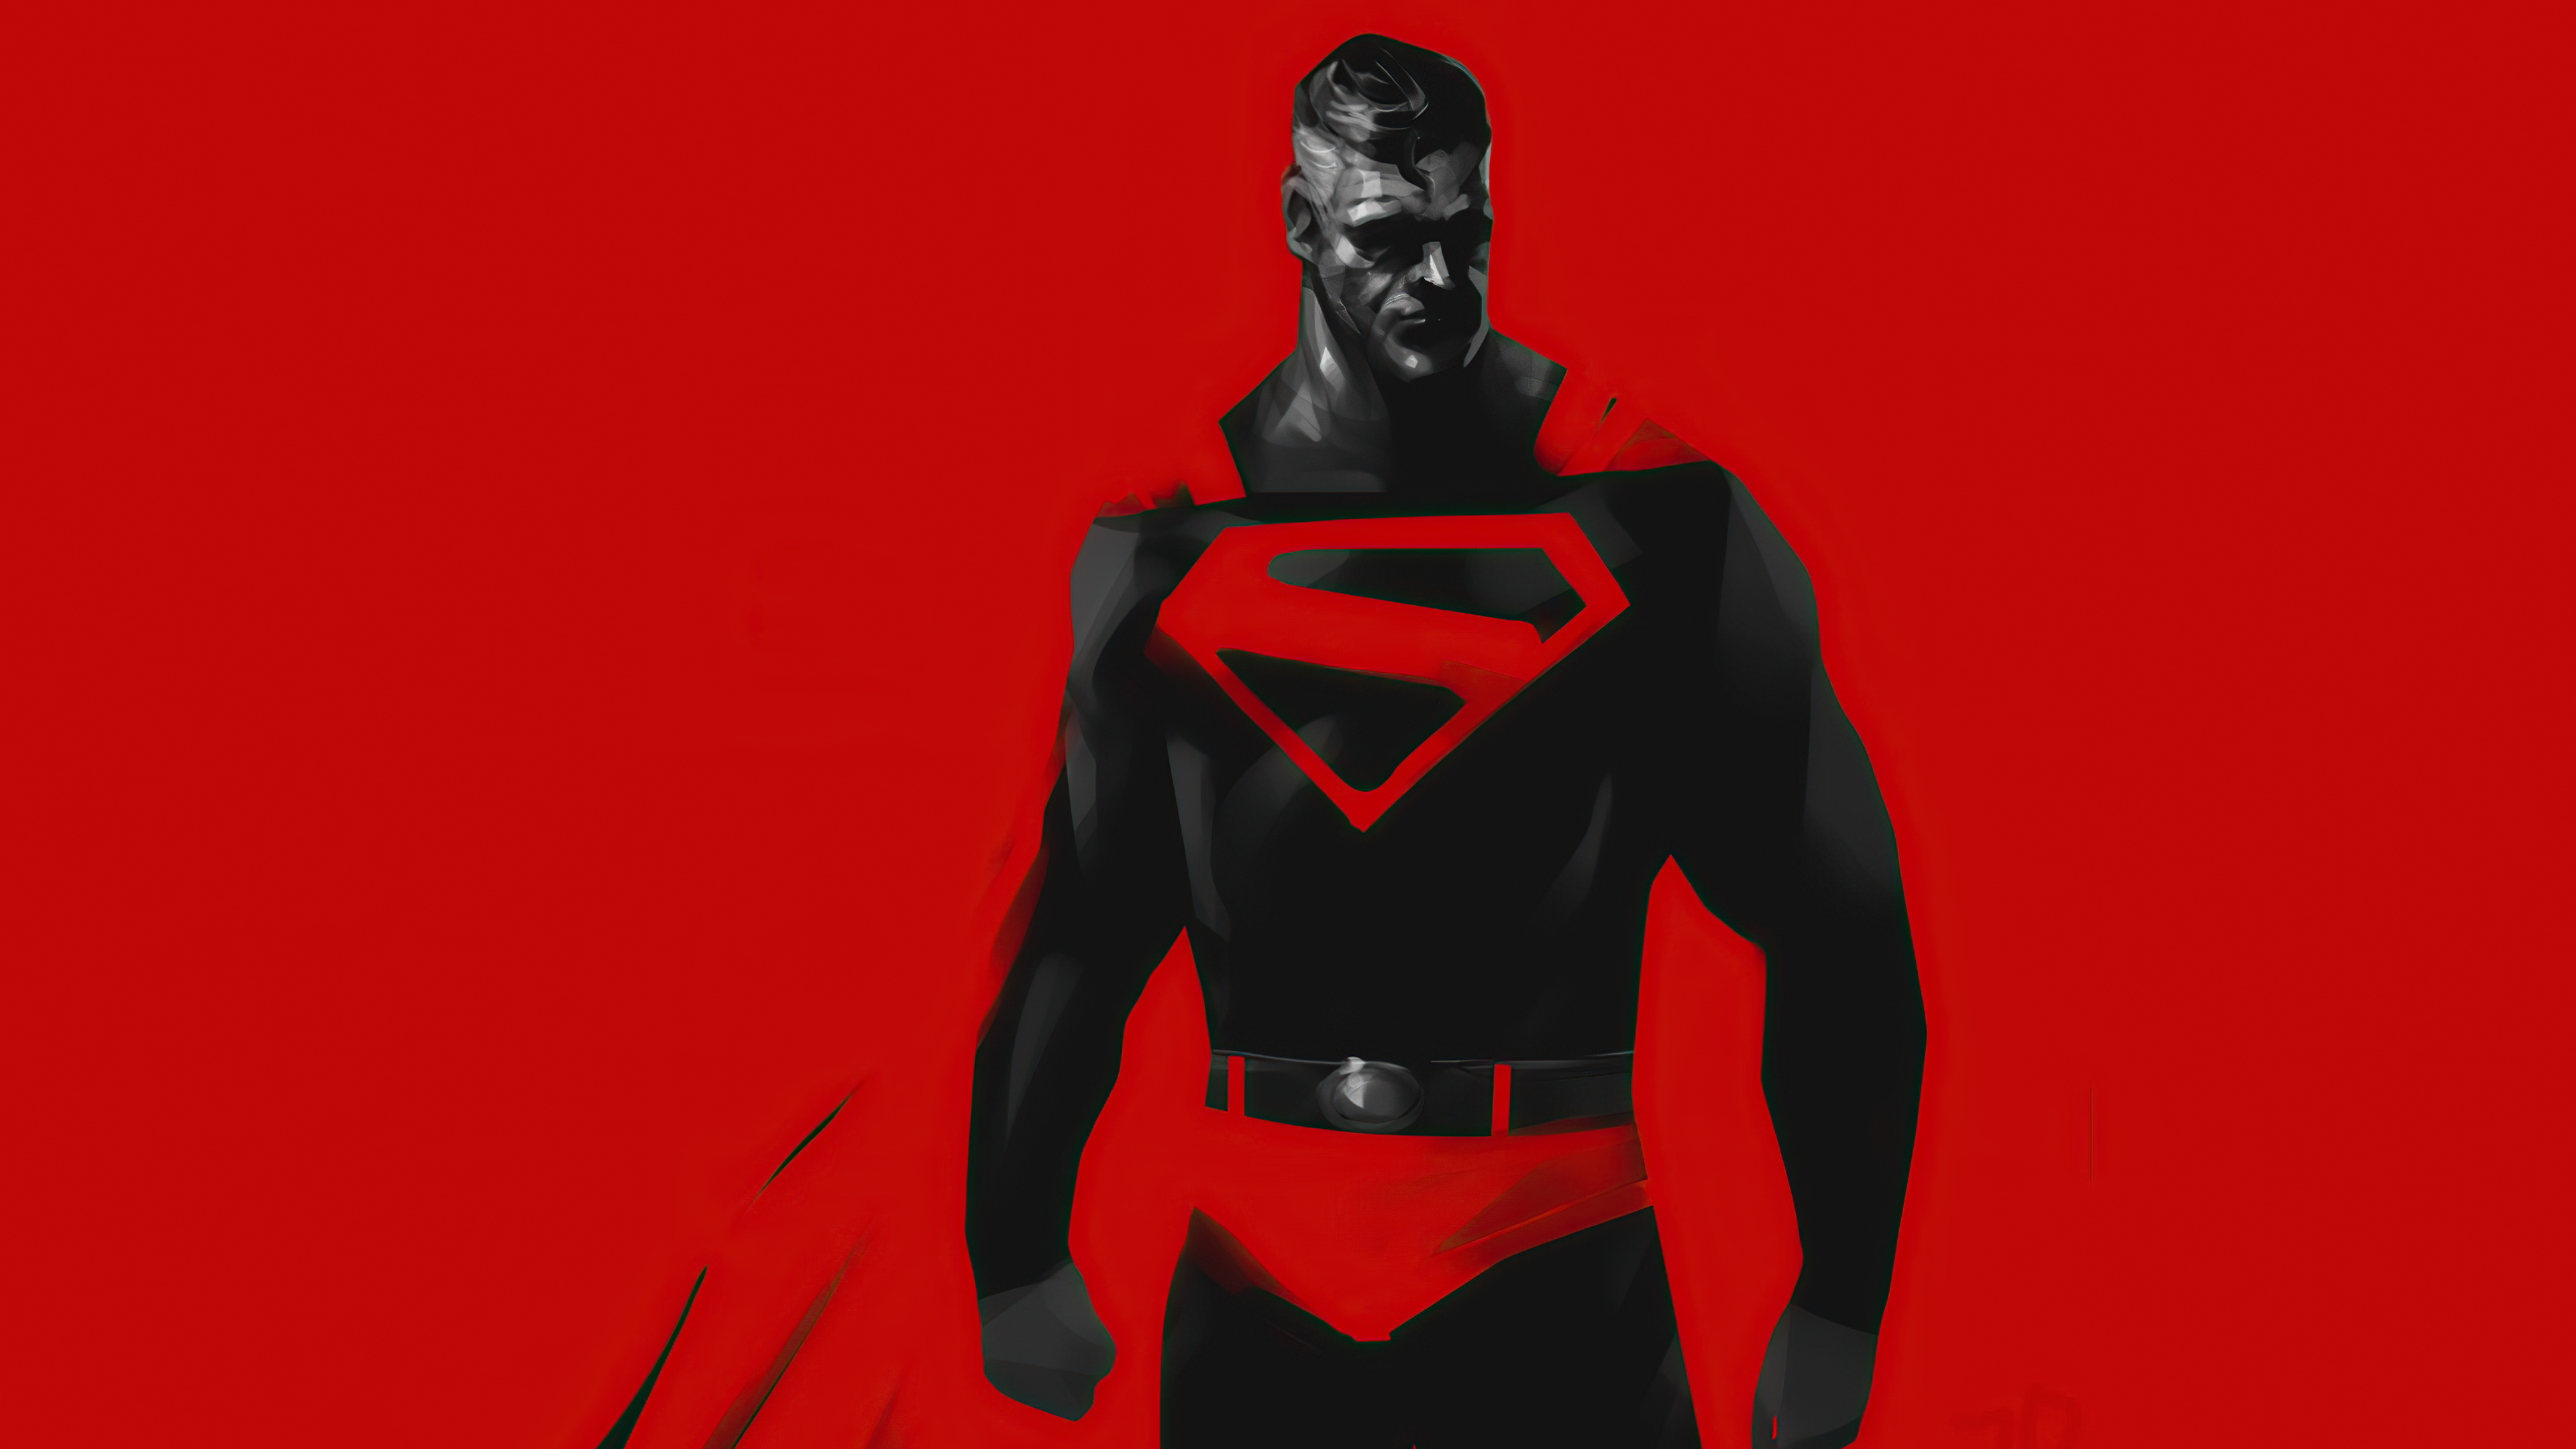 kingdom come superman 4k 1619215238 - Kingdom Come Superman 4k - Kingdom Come Superman 4k wallpapers